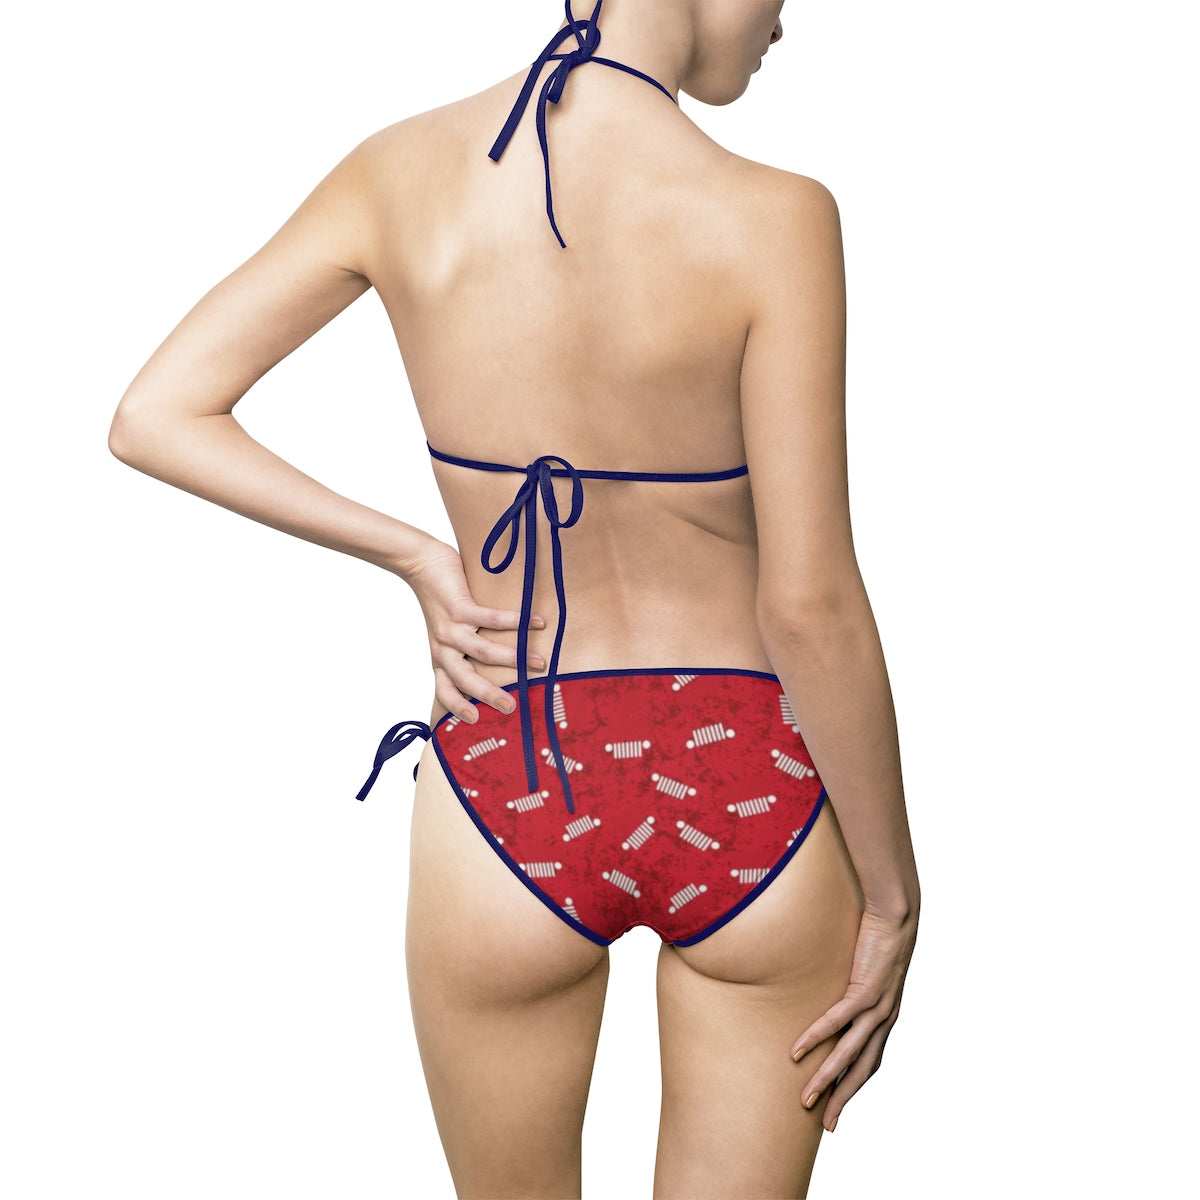 Red jeep Women's Bikini Swimsuit